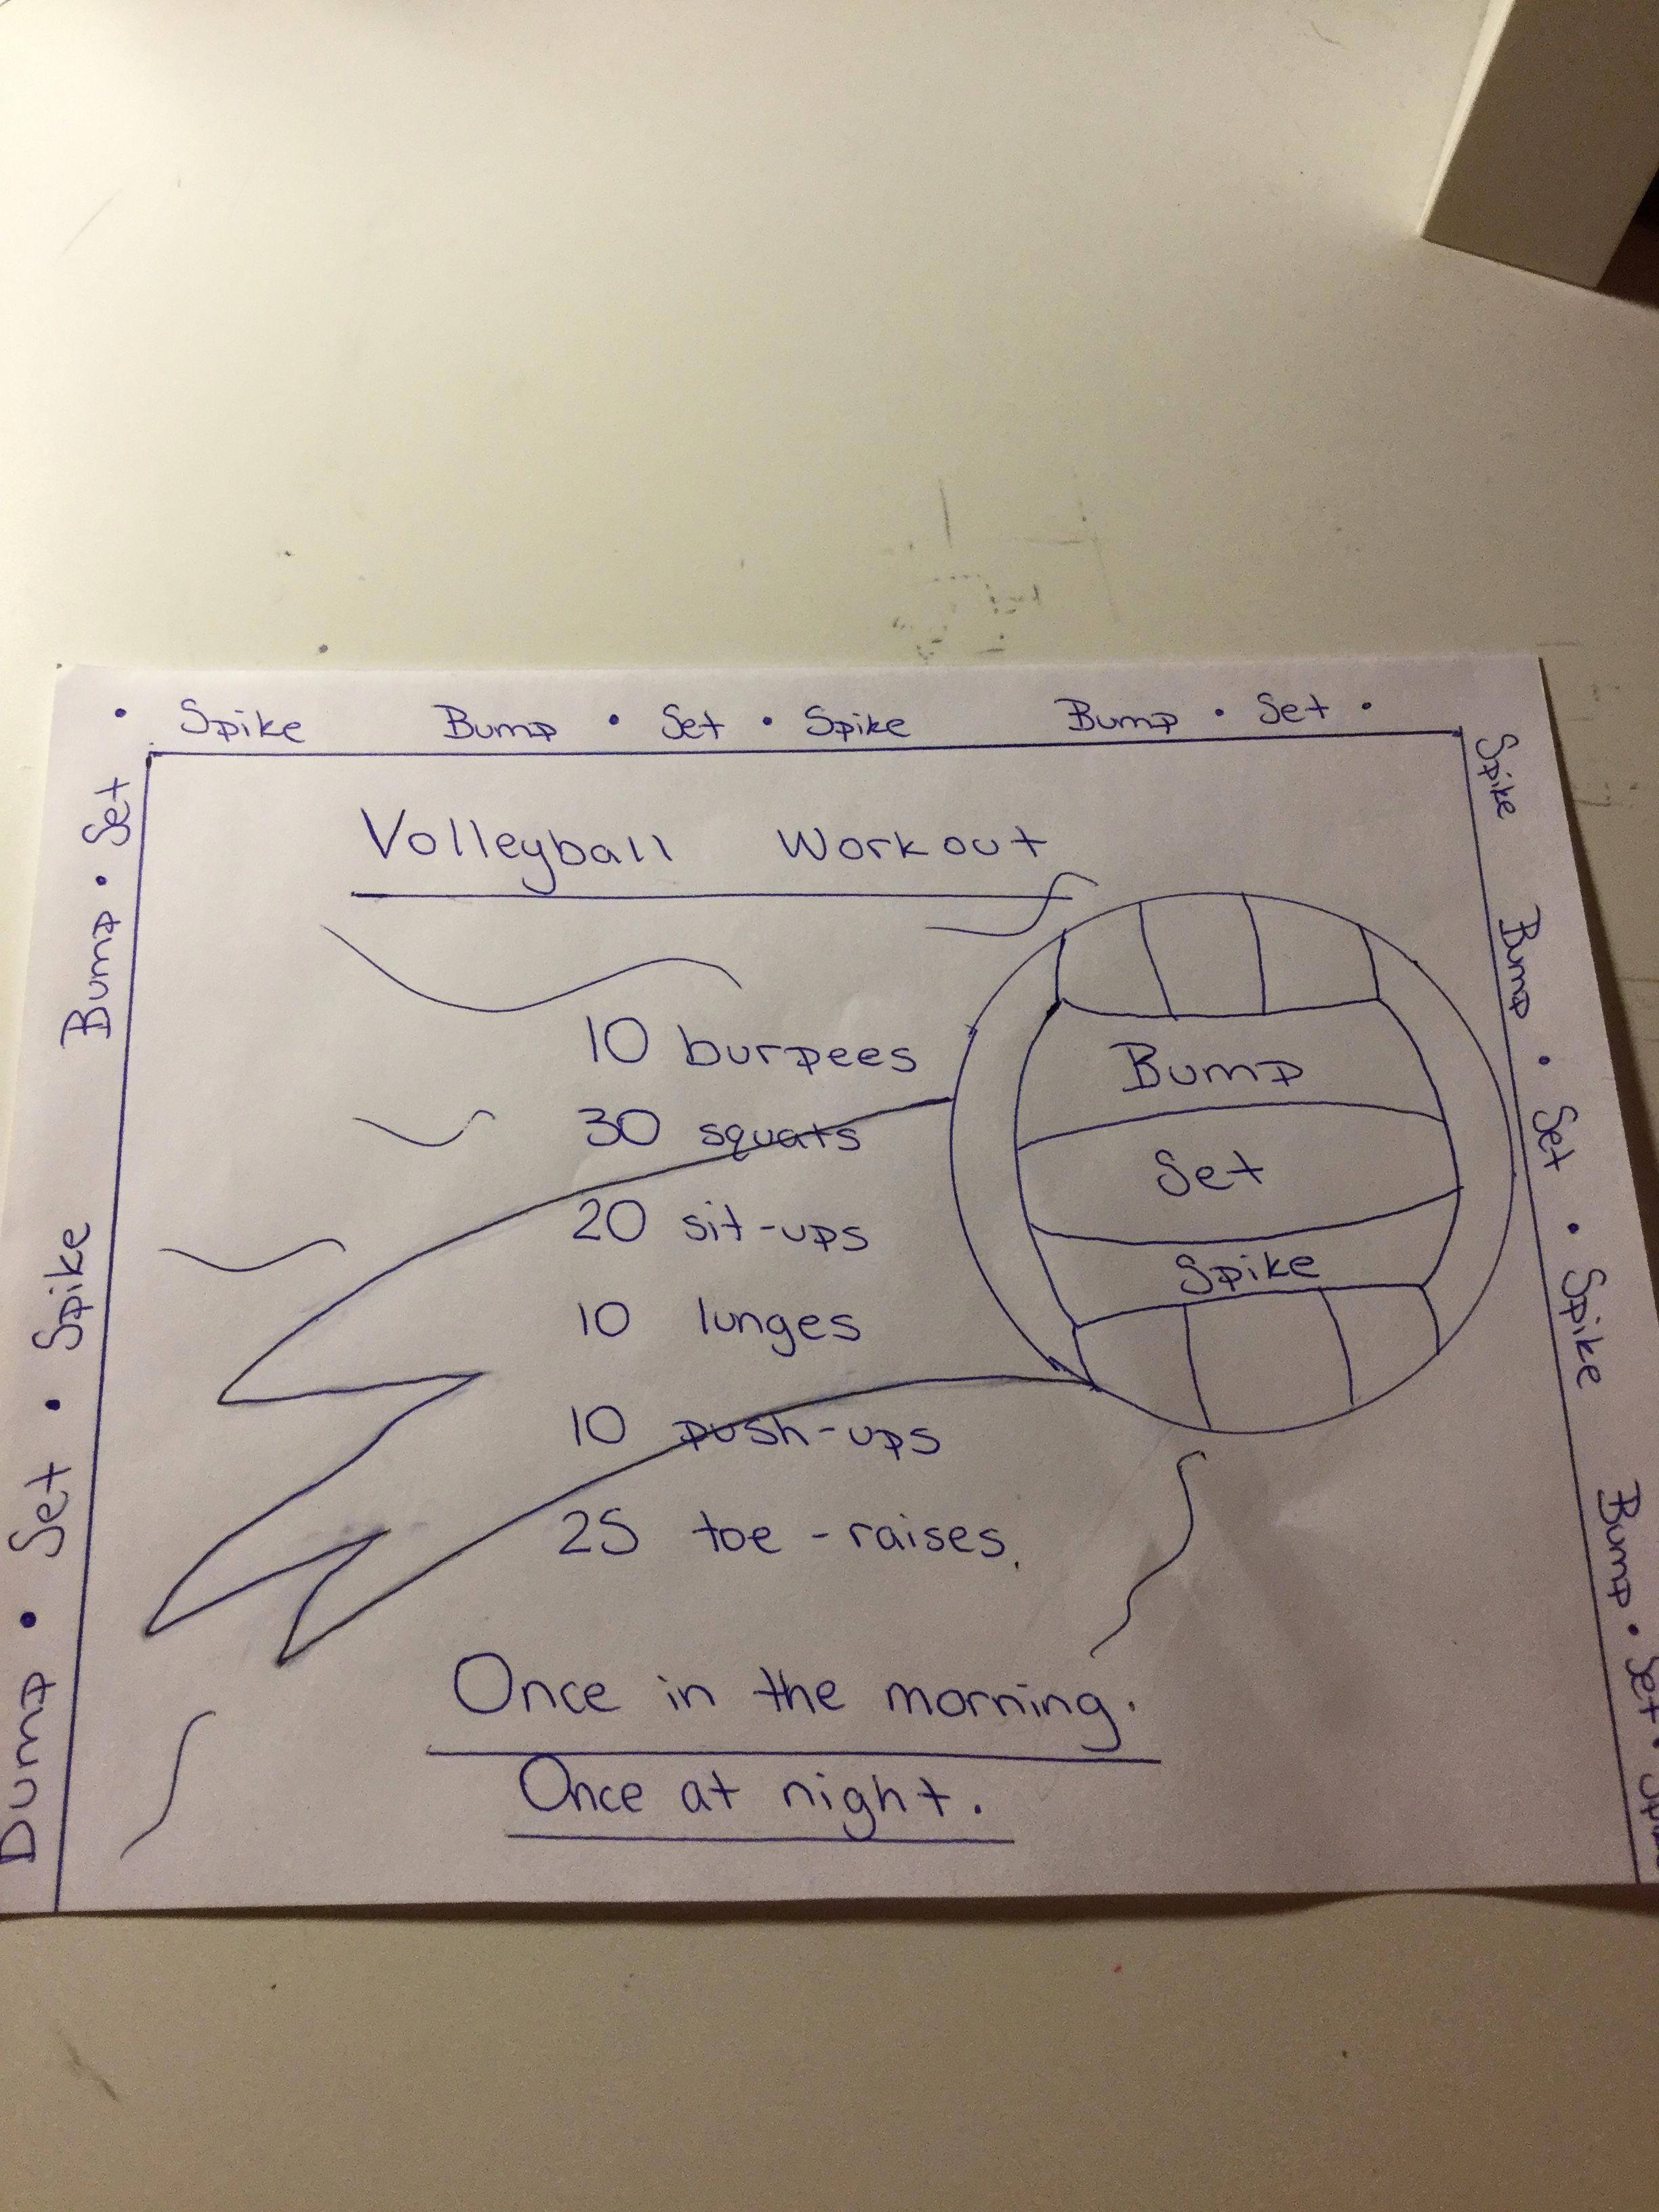 Volleyball Workout Basketballcourthacks Volleyball Workouts Volleyball Drills Coaching Volleyball